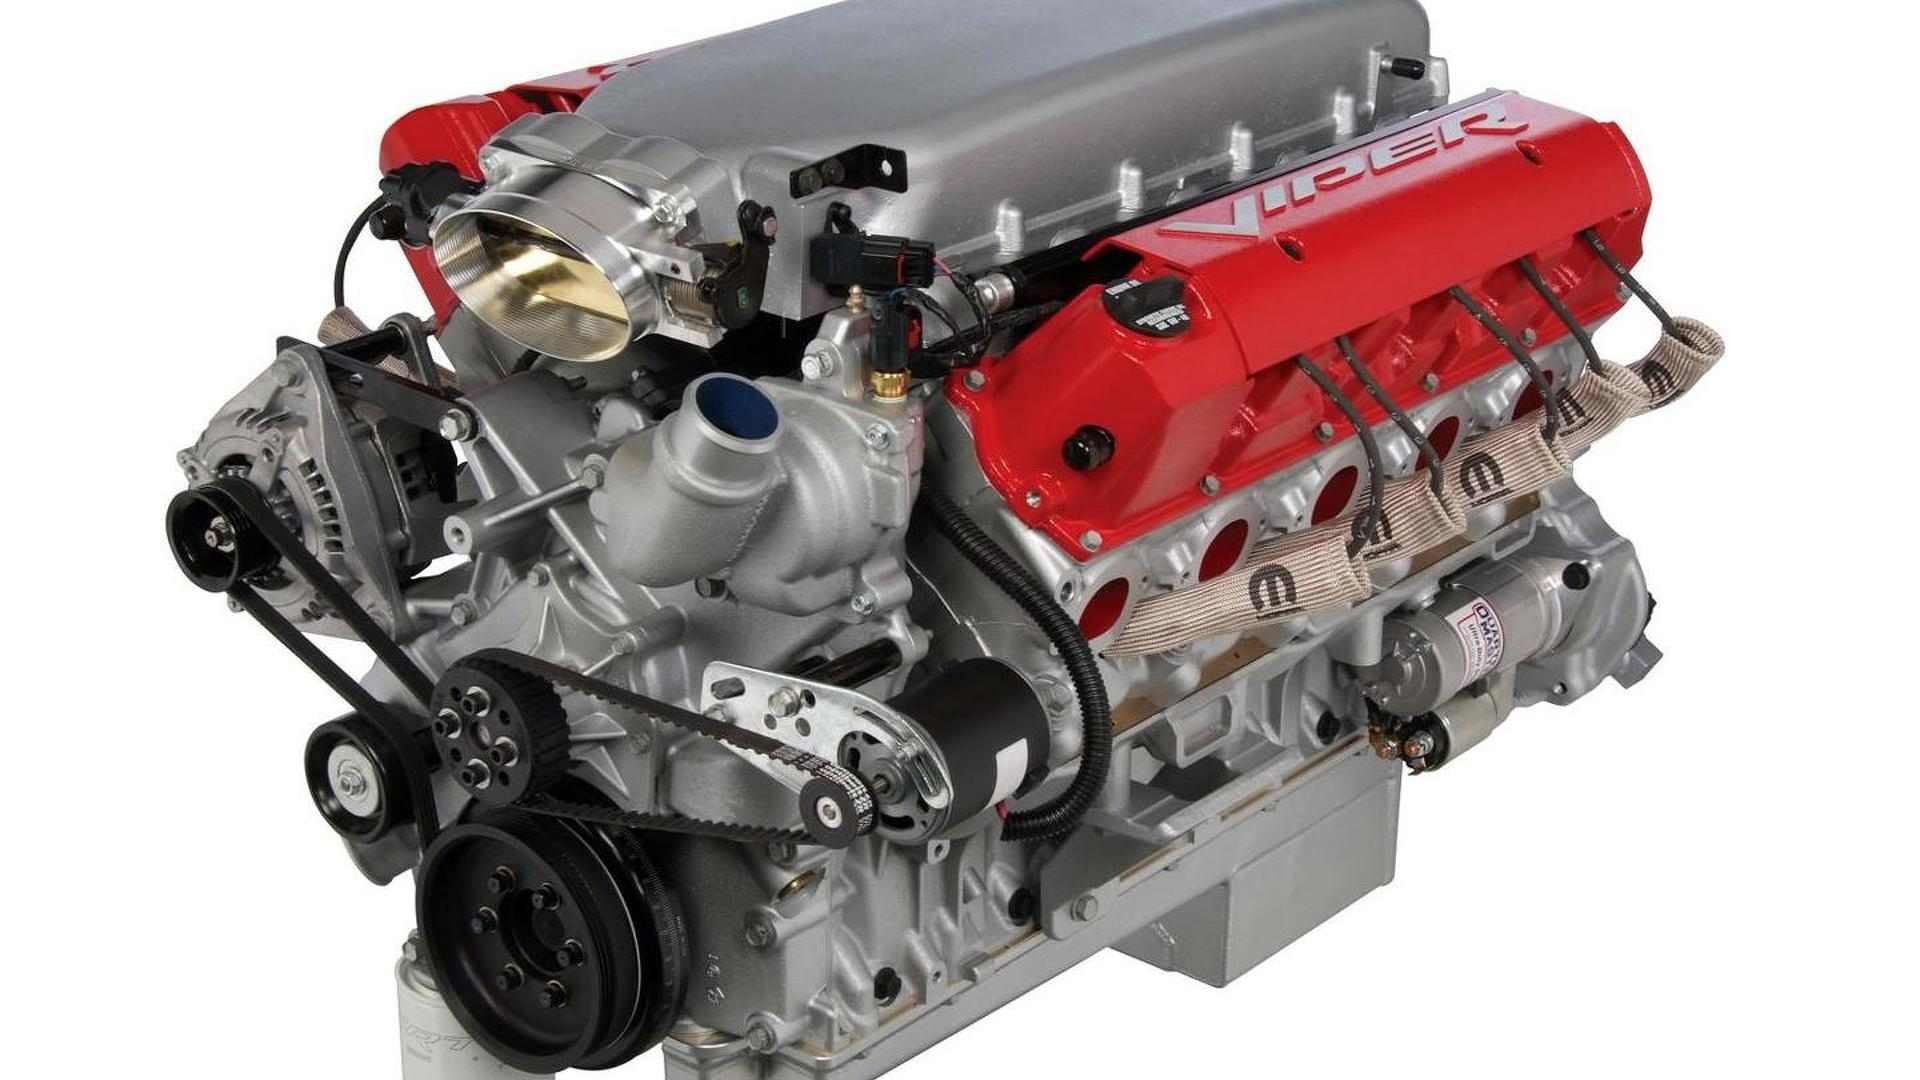 Mopar 8 4 Liter V10 Crate Engine With 800 Hp Introduced